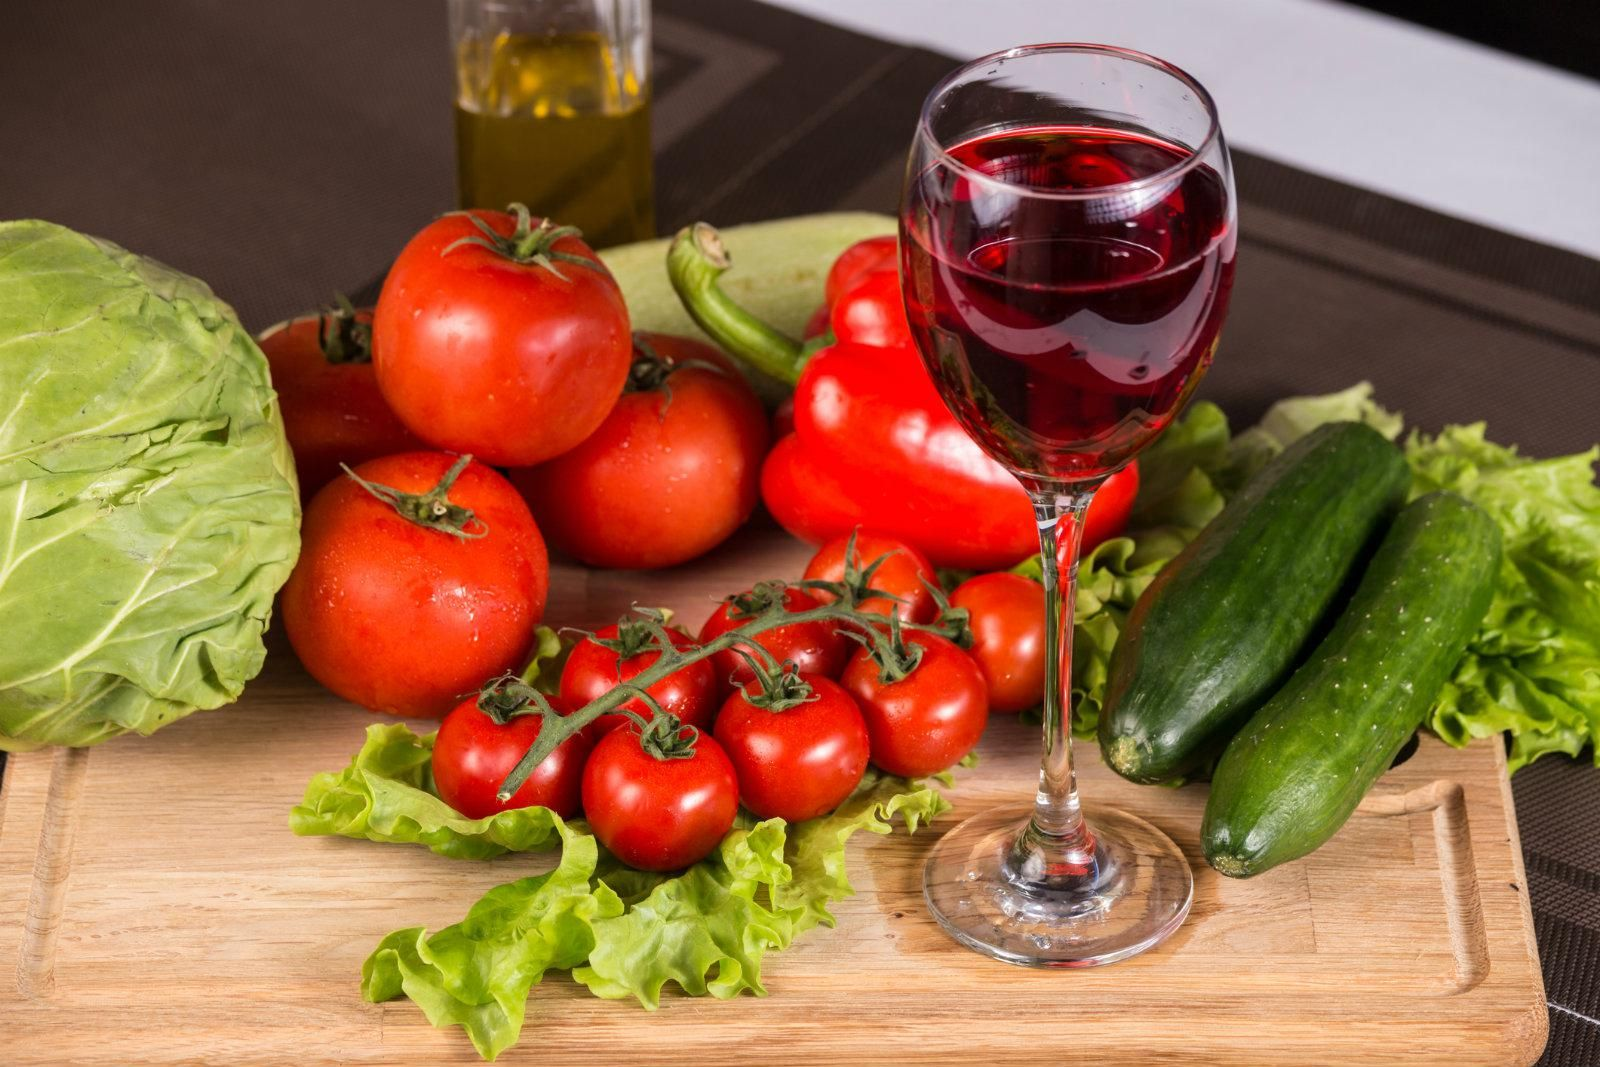 World S Oldest Man Francisco Nunez Oliviera Died At 113 After Crediting Longevity To Red Wine And Vegetables Vegetables Red Wine Health